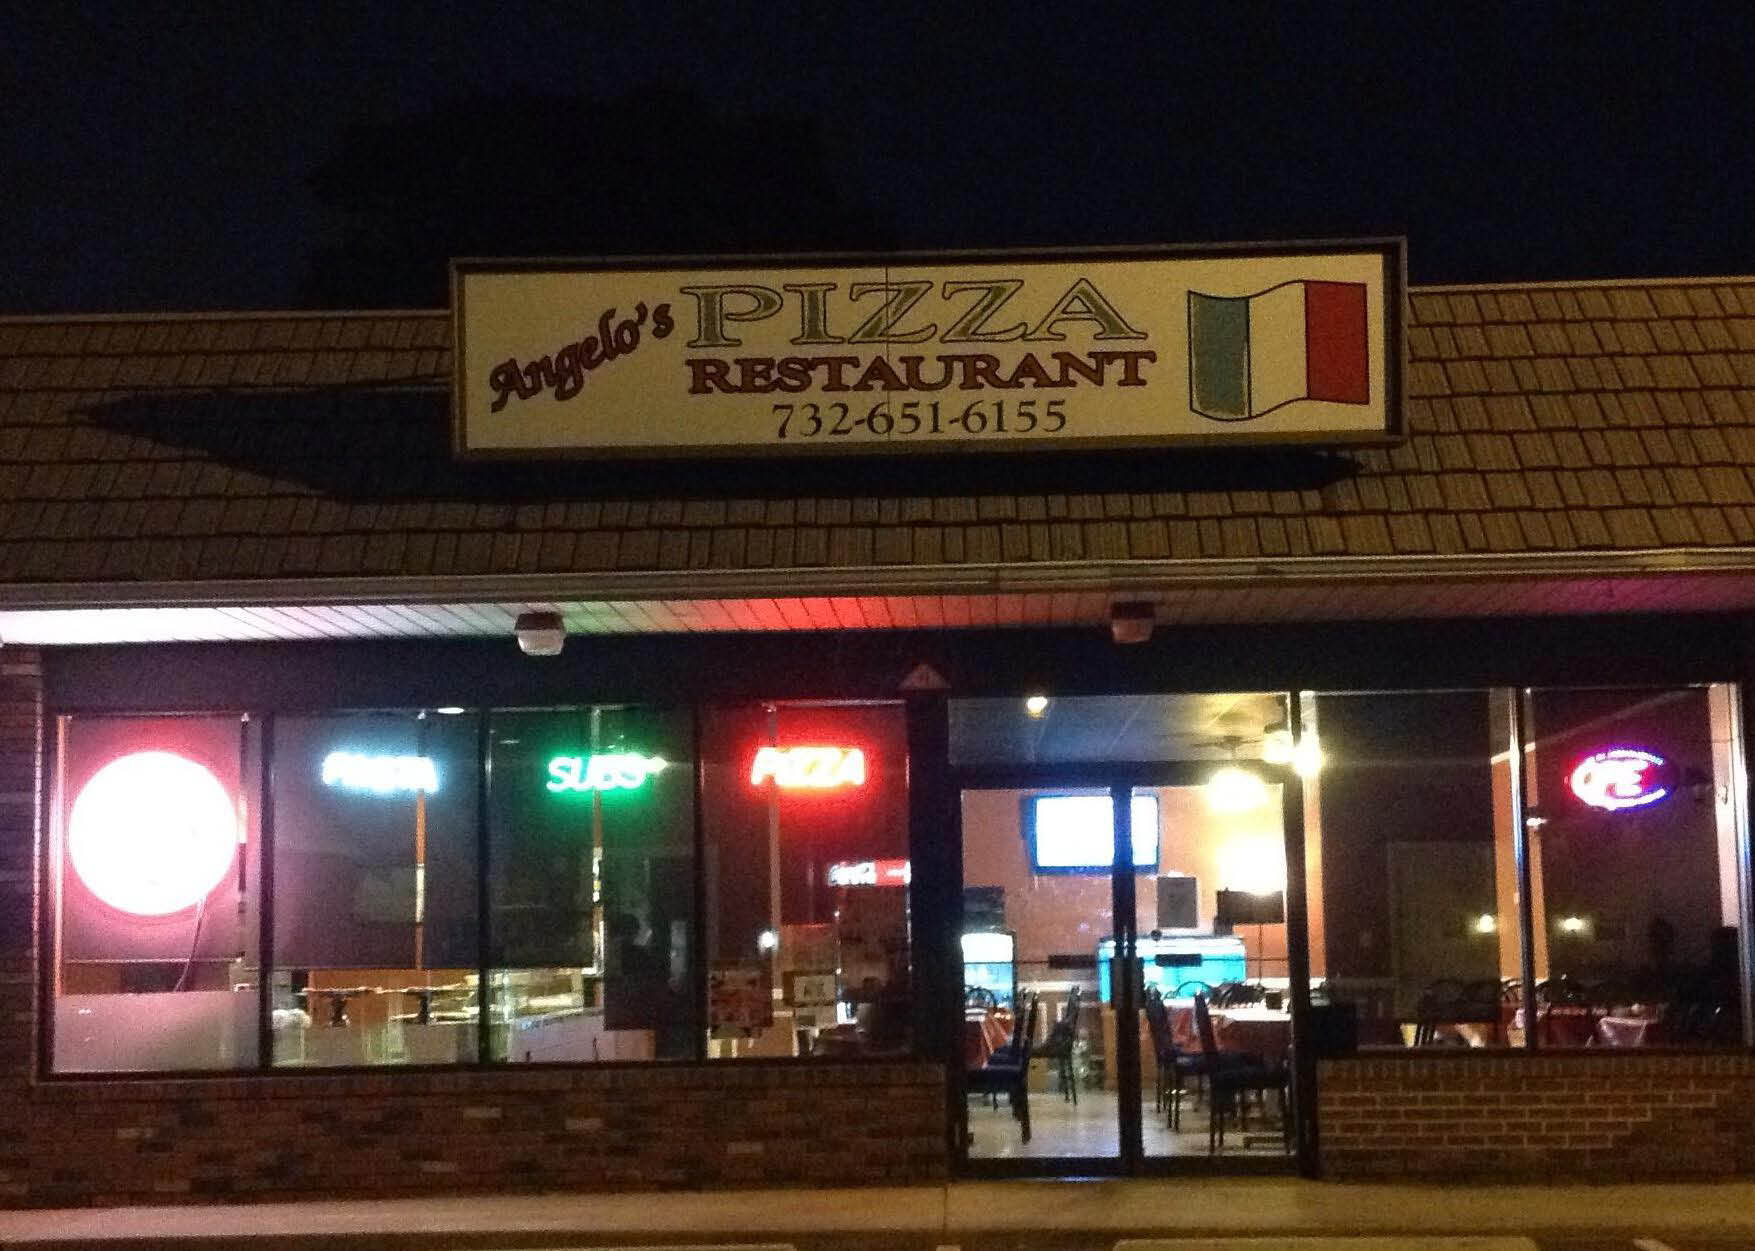 Angelo's Pizza & Restaurant, Sayreville